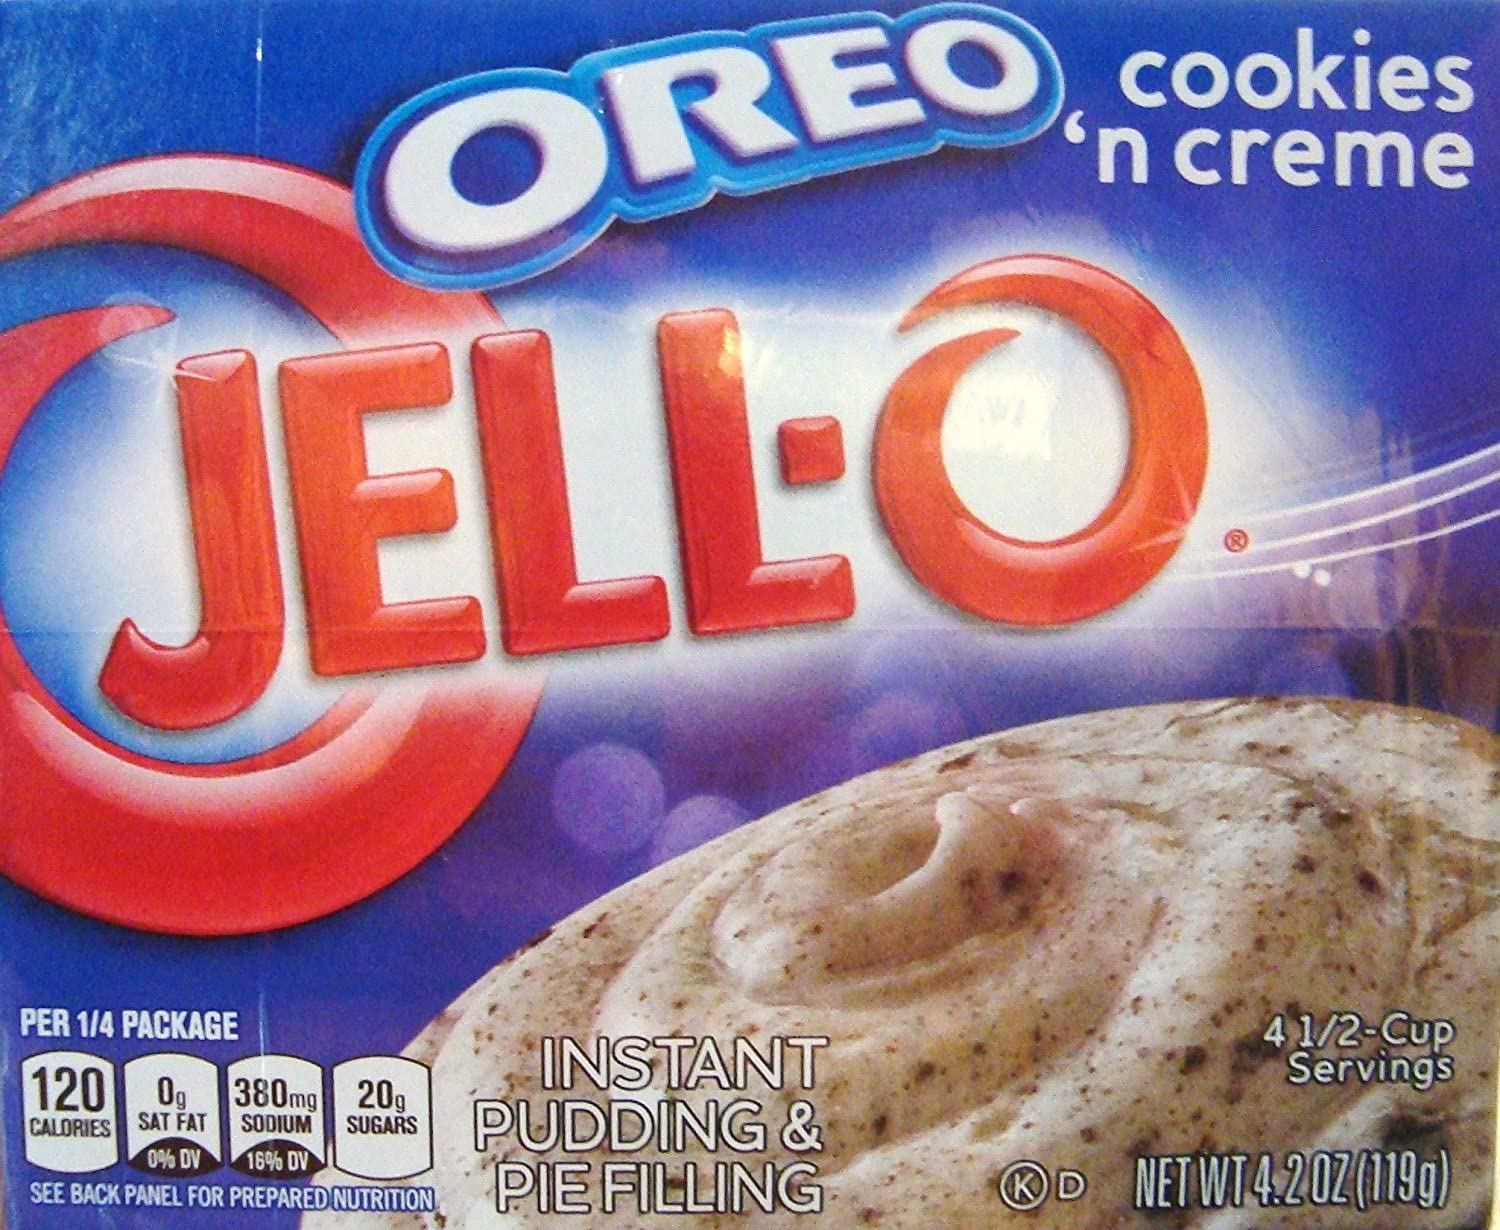 JELL-O OREO Cookies N Creme Instant Pudding and Pie Filling 4.2 ...